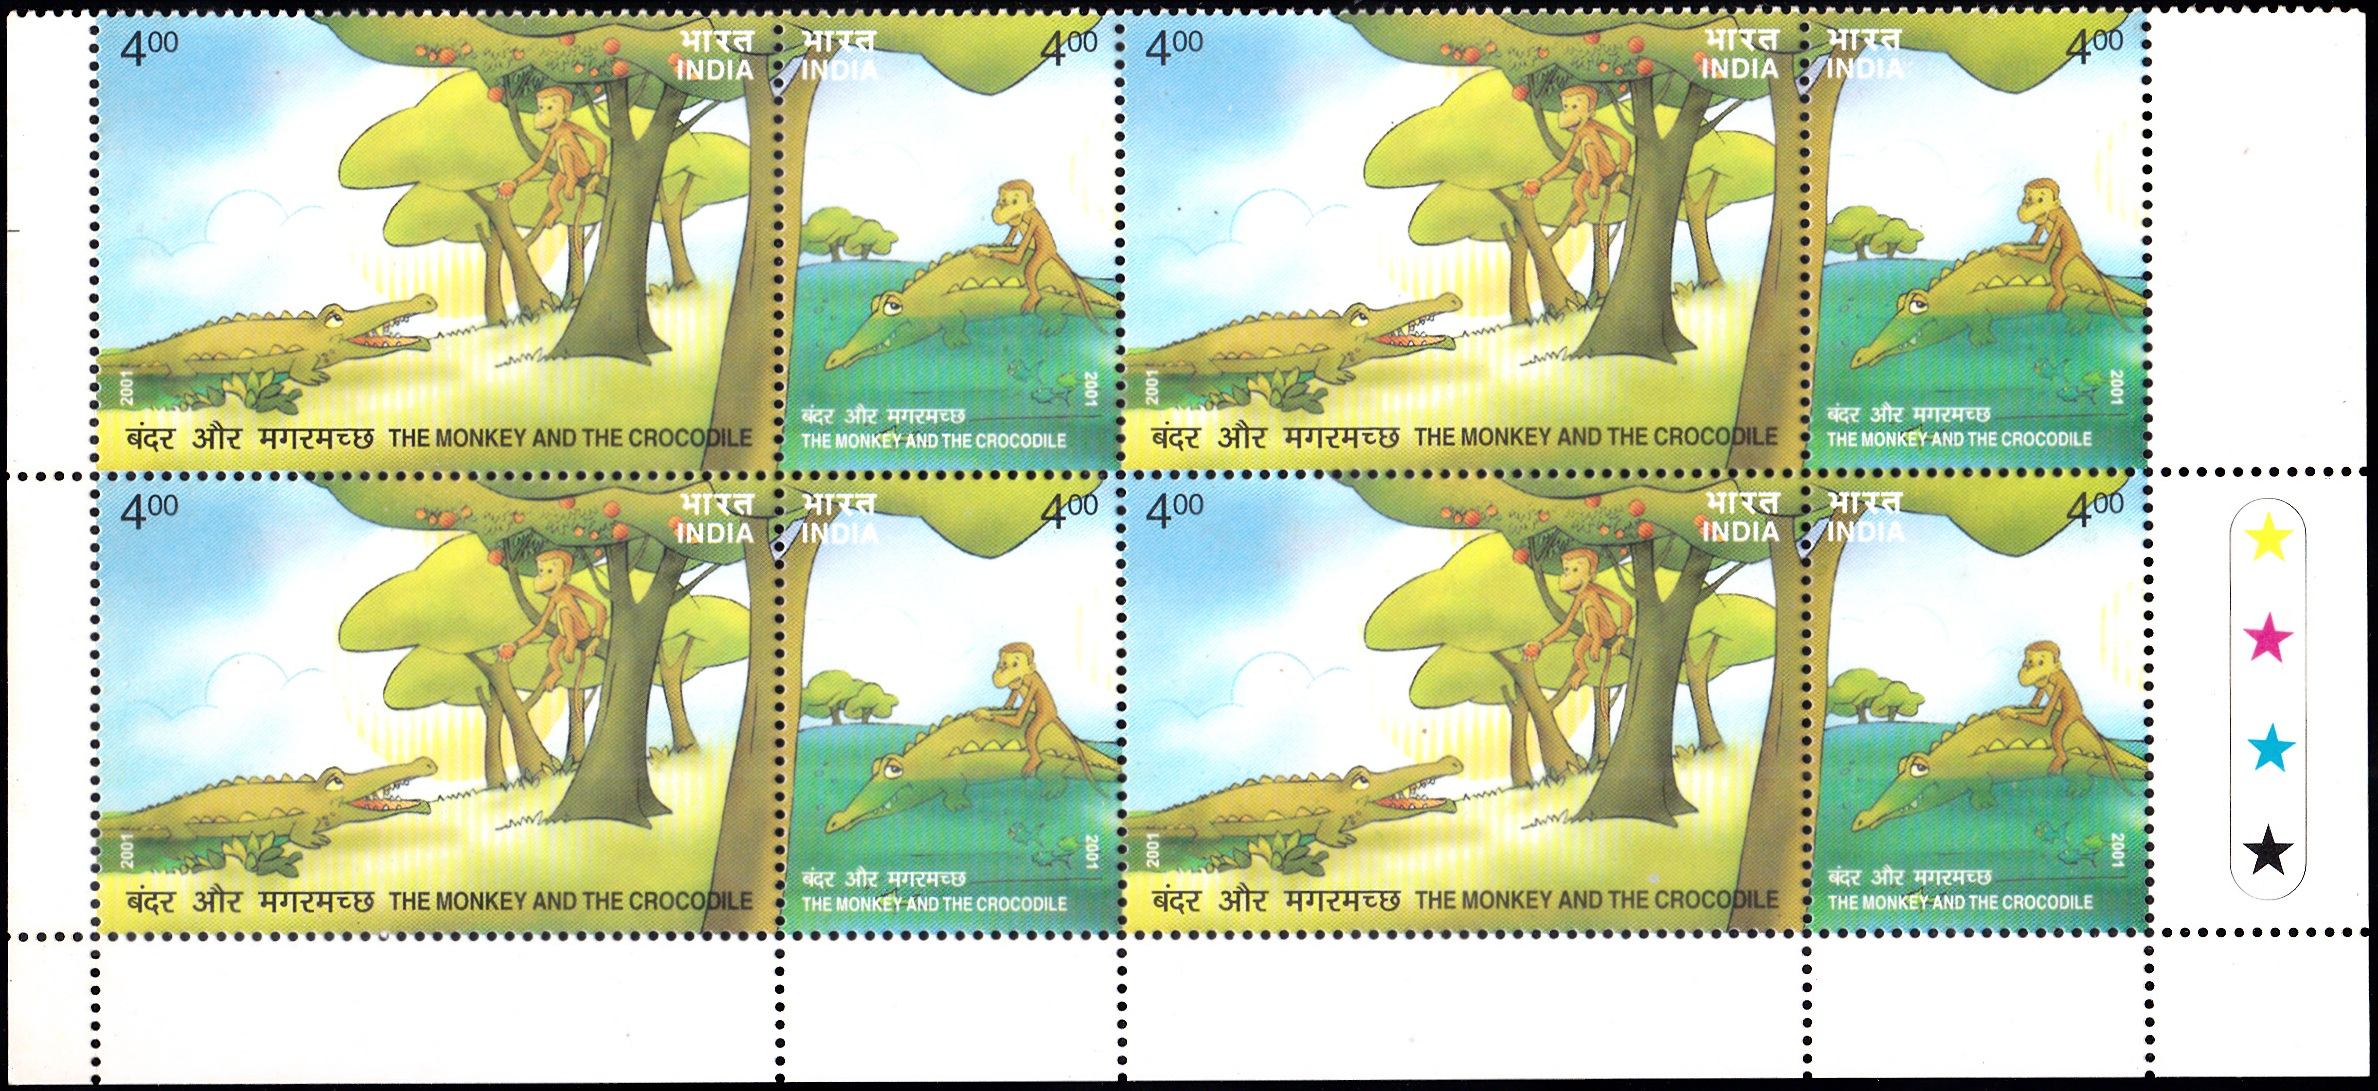 1868a Panchatantra [India Stamp 2001] Block of 4